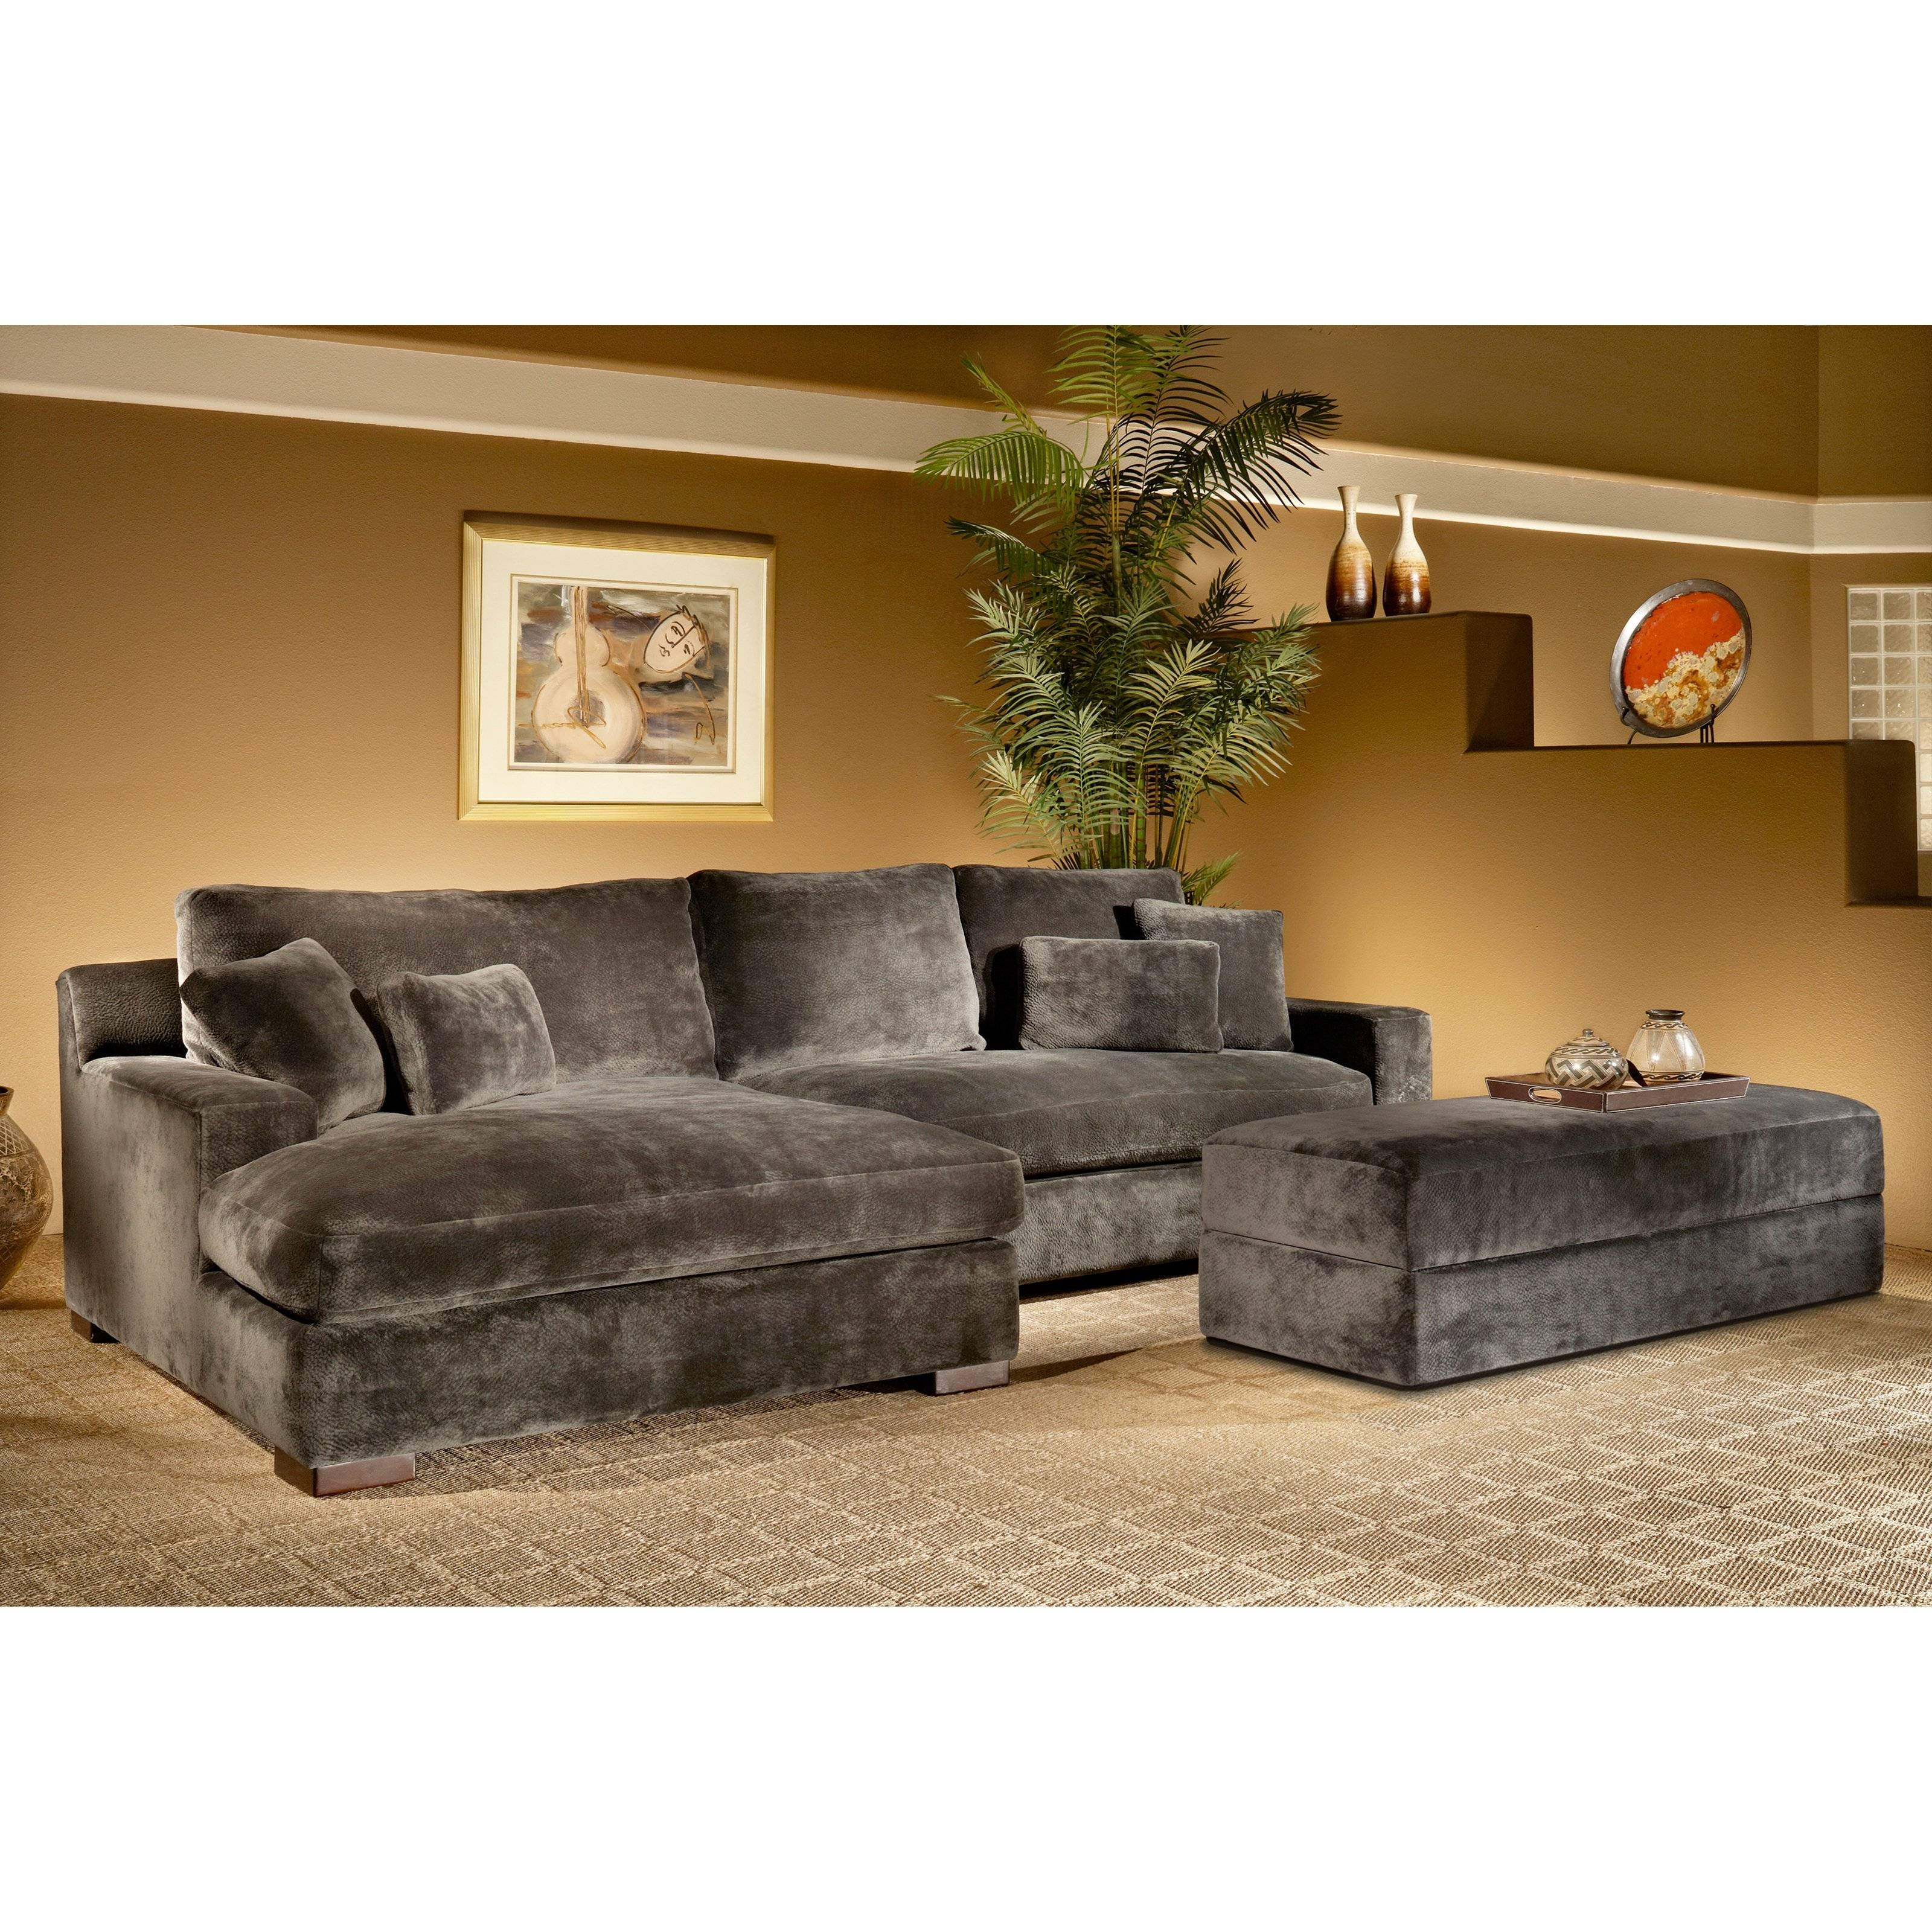 Furniture: High Quality Couch Sectional Design For Contemporary In Cindy Crawford Microfiber Sofas (Photo 13 of 15)